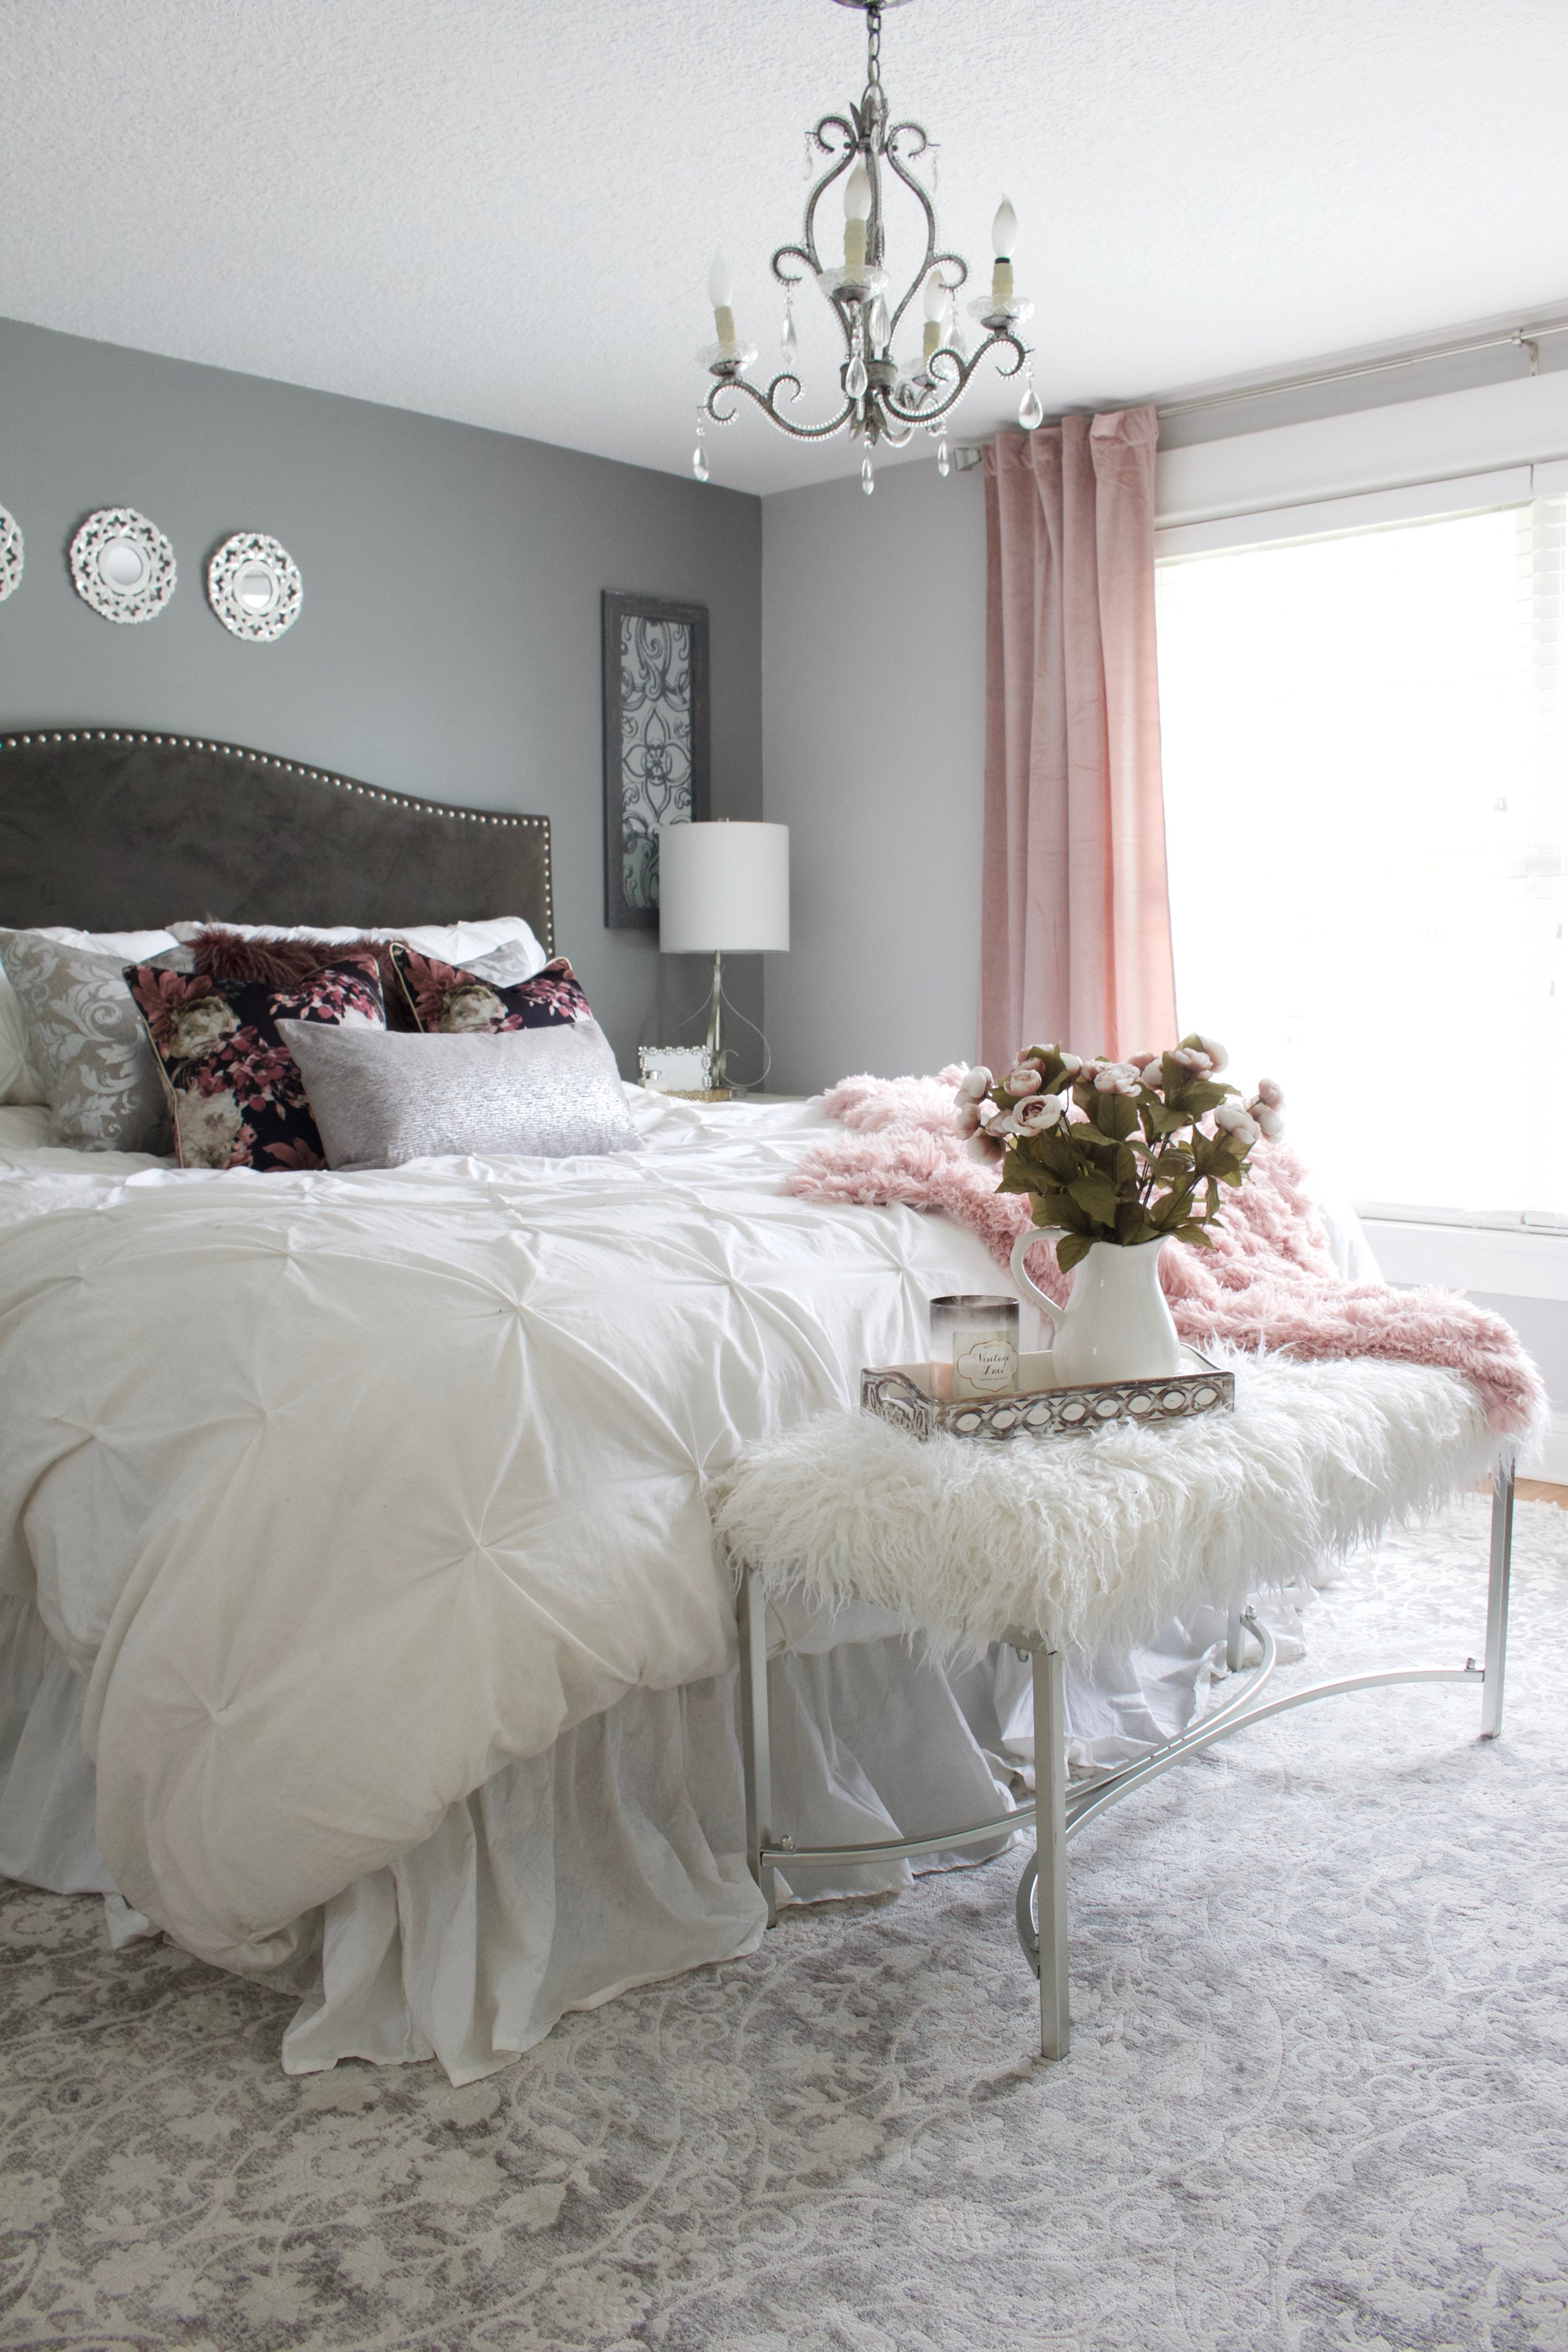 Master Bedroom Refresh with eSale Rugs | Part 2 - Styled ...